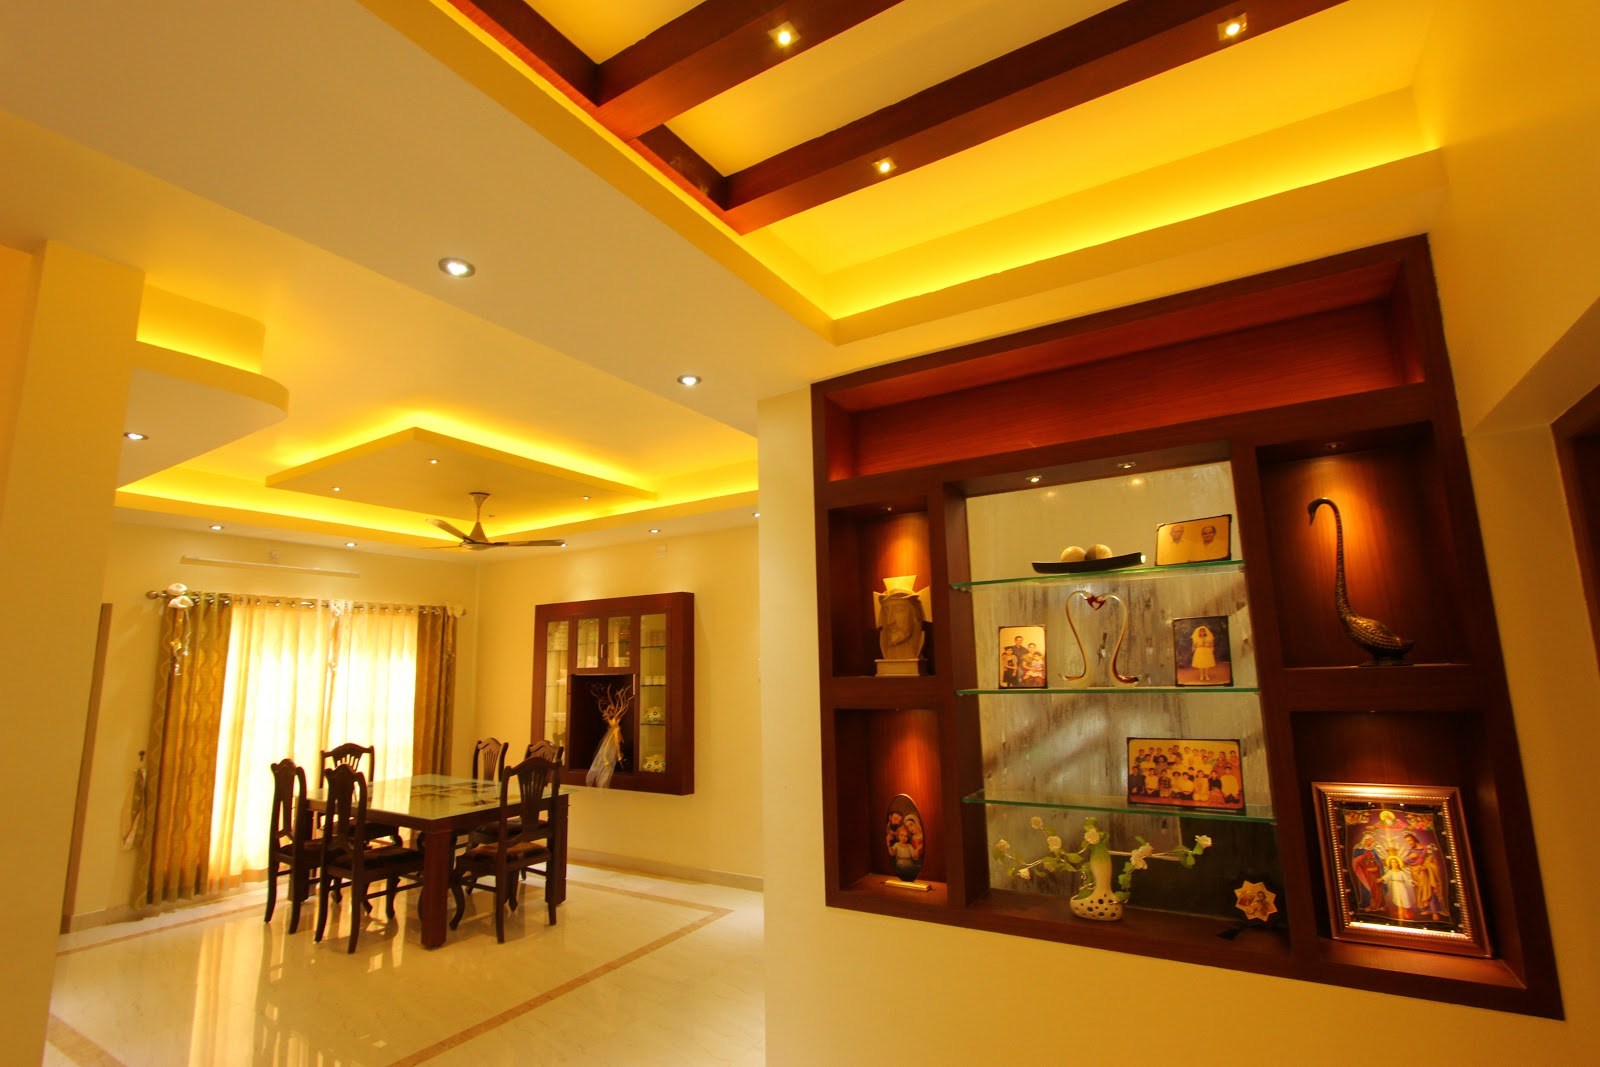 Shilpakala interiors award winning home interior design for Interior design your home